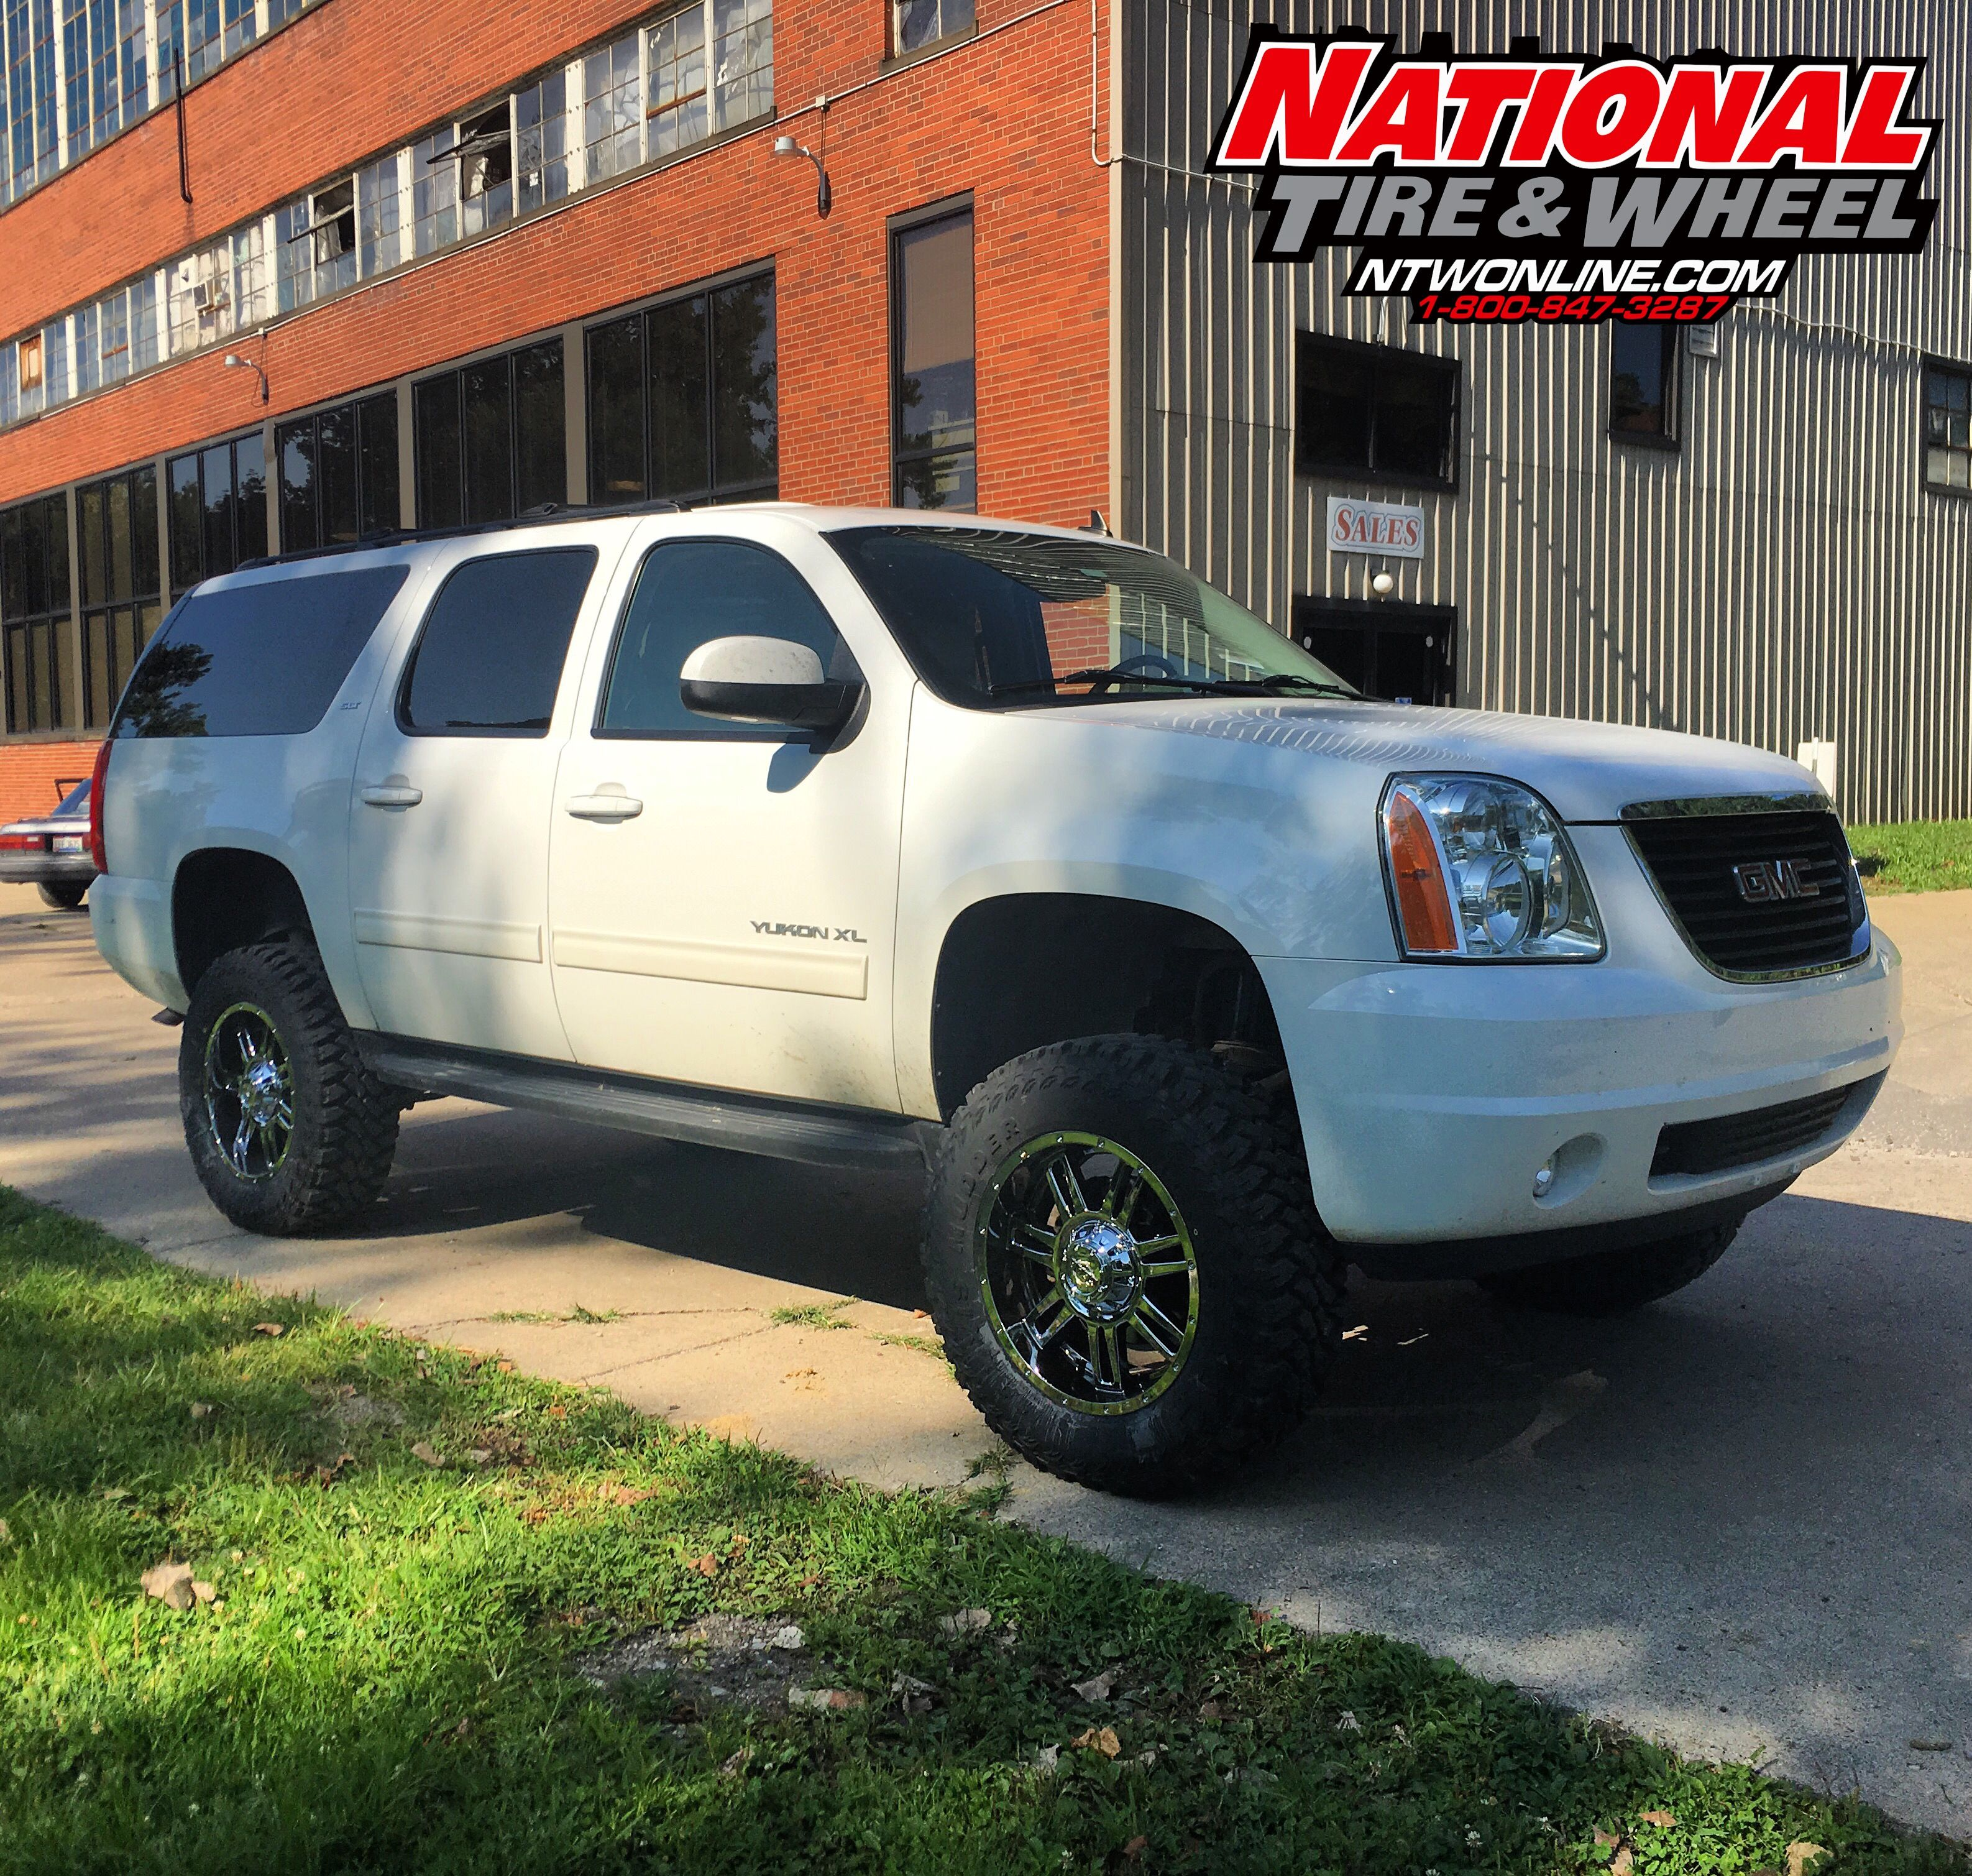 This 2015 Gmc Yukon Xl Received A 7 5in Rough Country Suspension